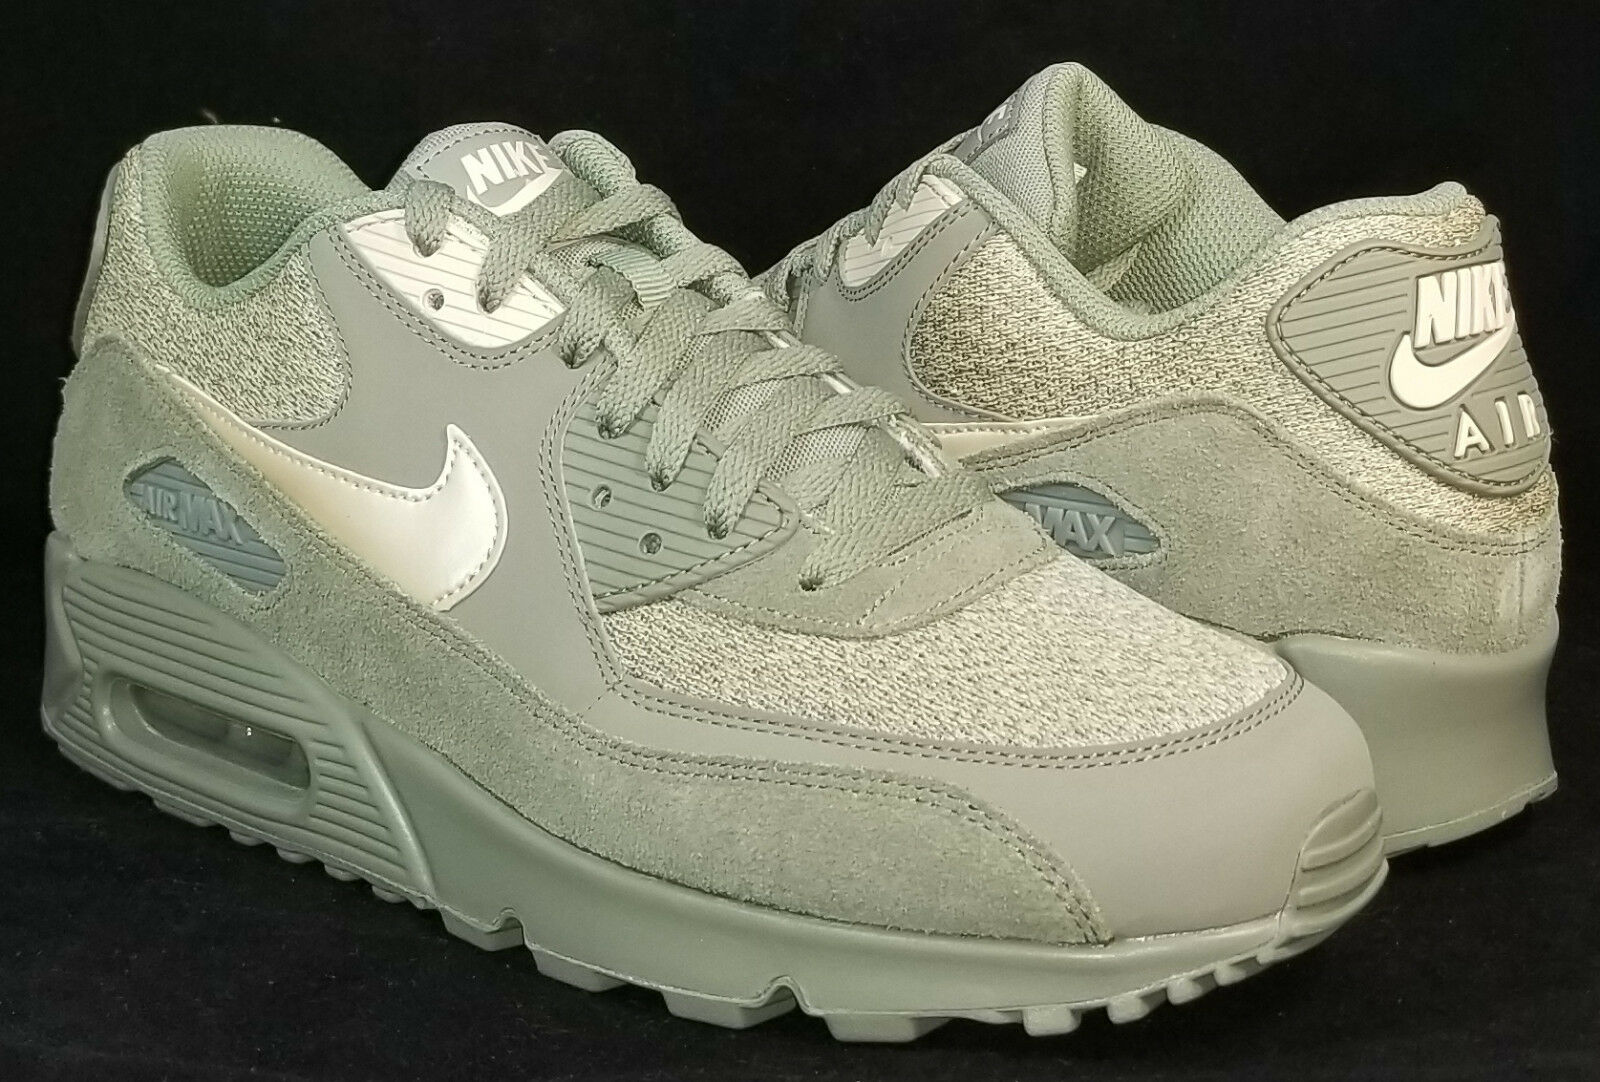 NIB NIKE Mens 10.5 AIR MAX 90 ESSENTIAL 537384 096 CASUAL LIFESTYLE SHOES 110